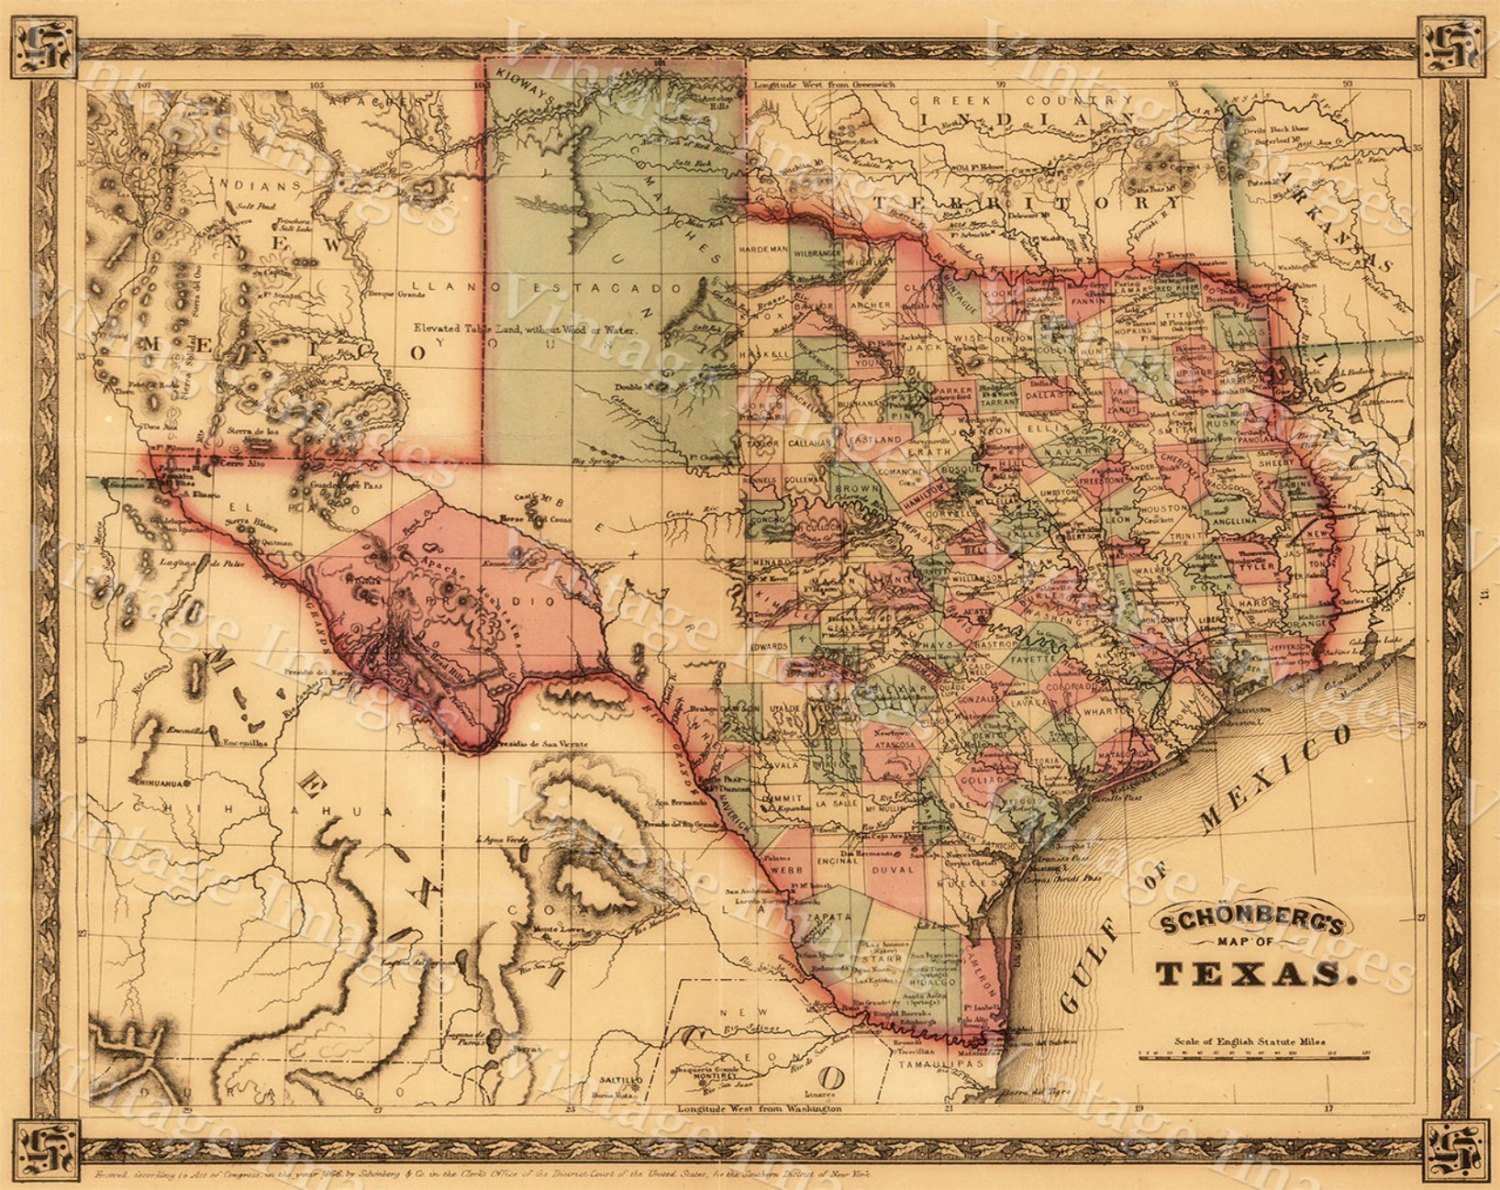 1866 Texas Map Old West Map Antique Texas Map Restoration | Etsy - Old Texas Map